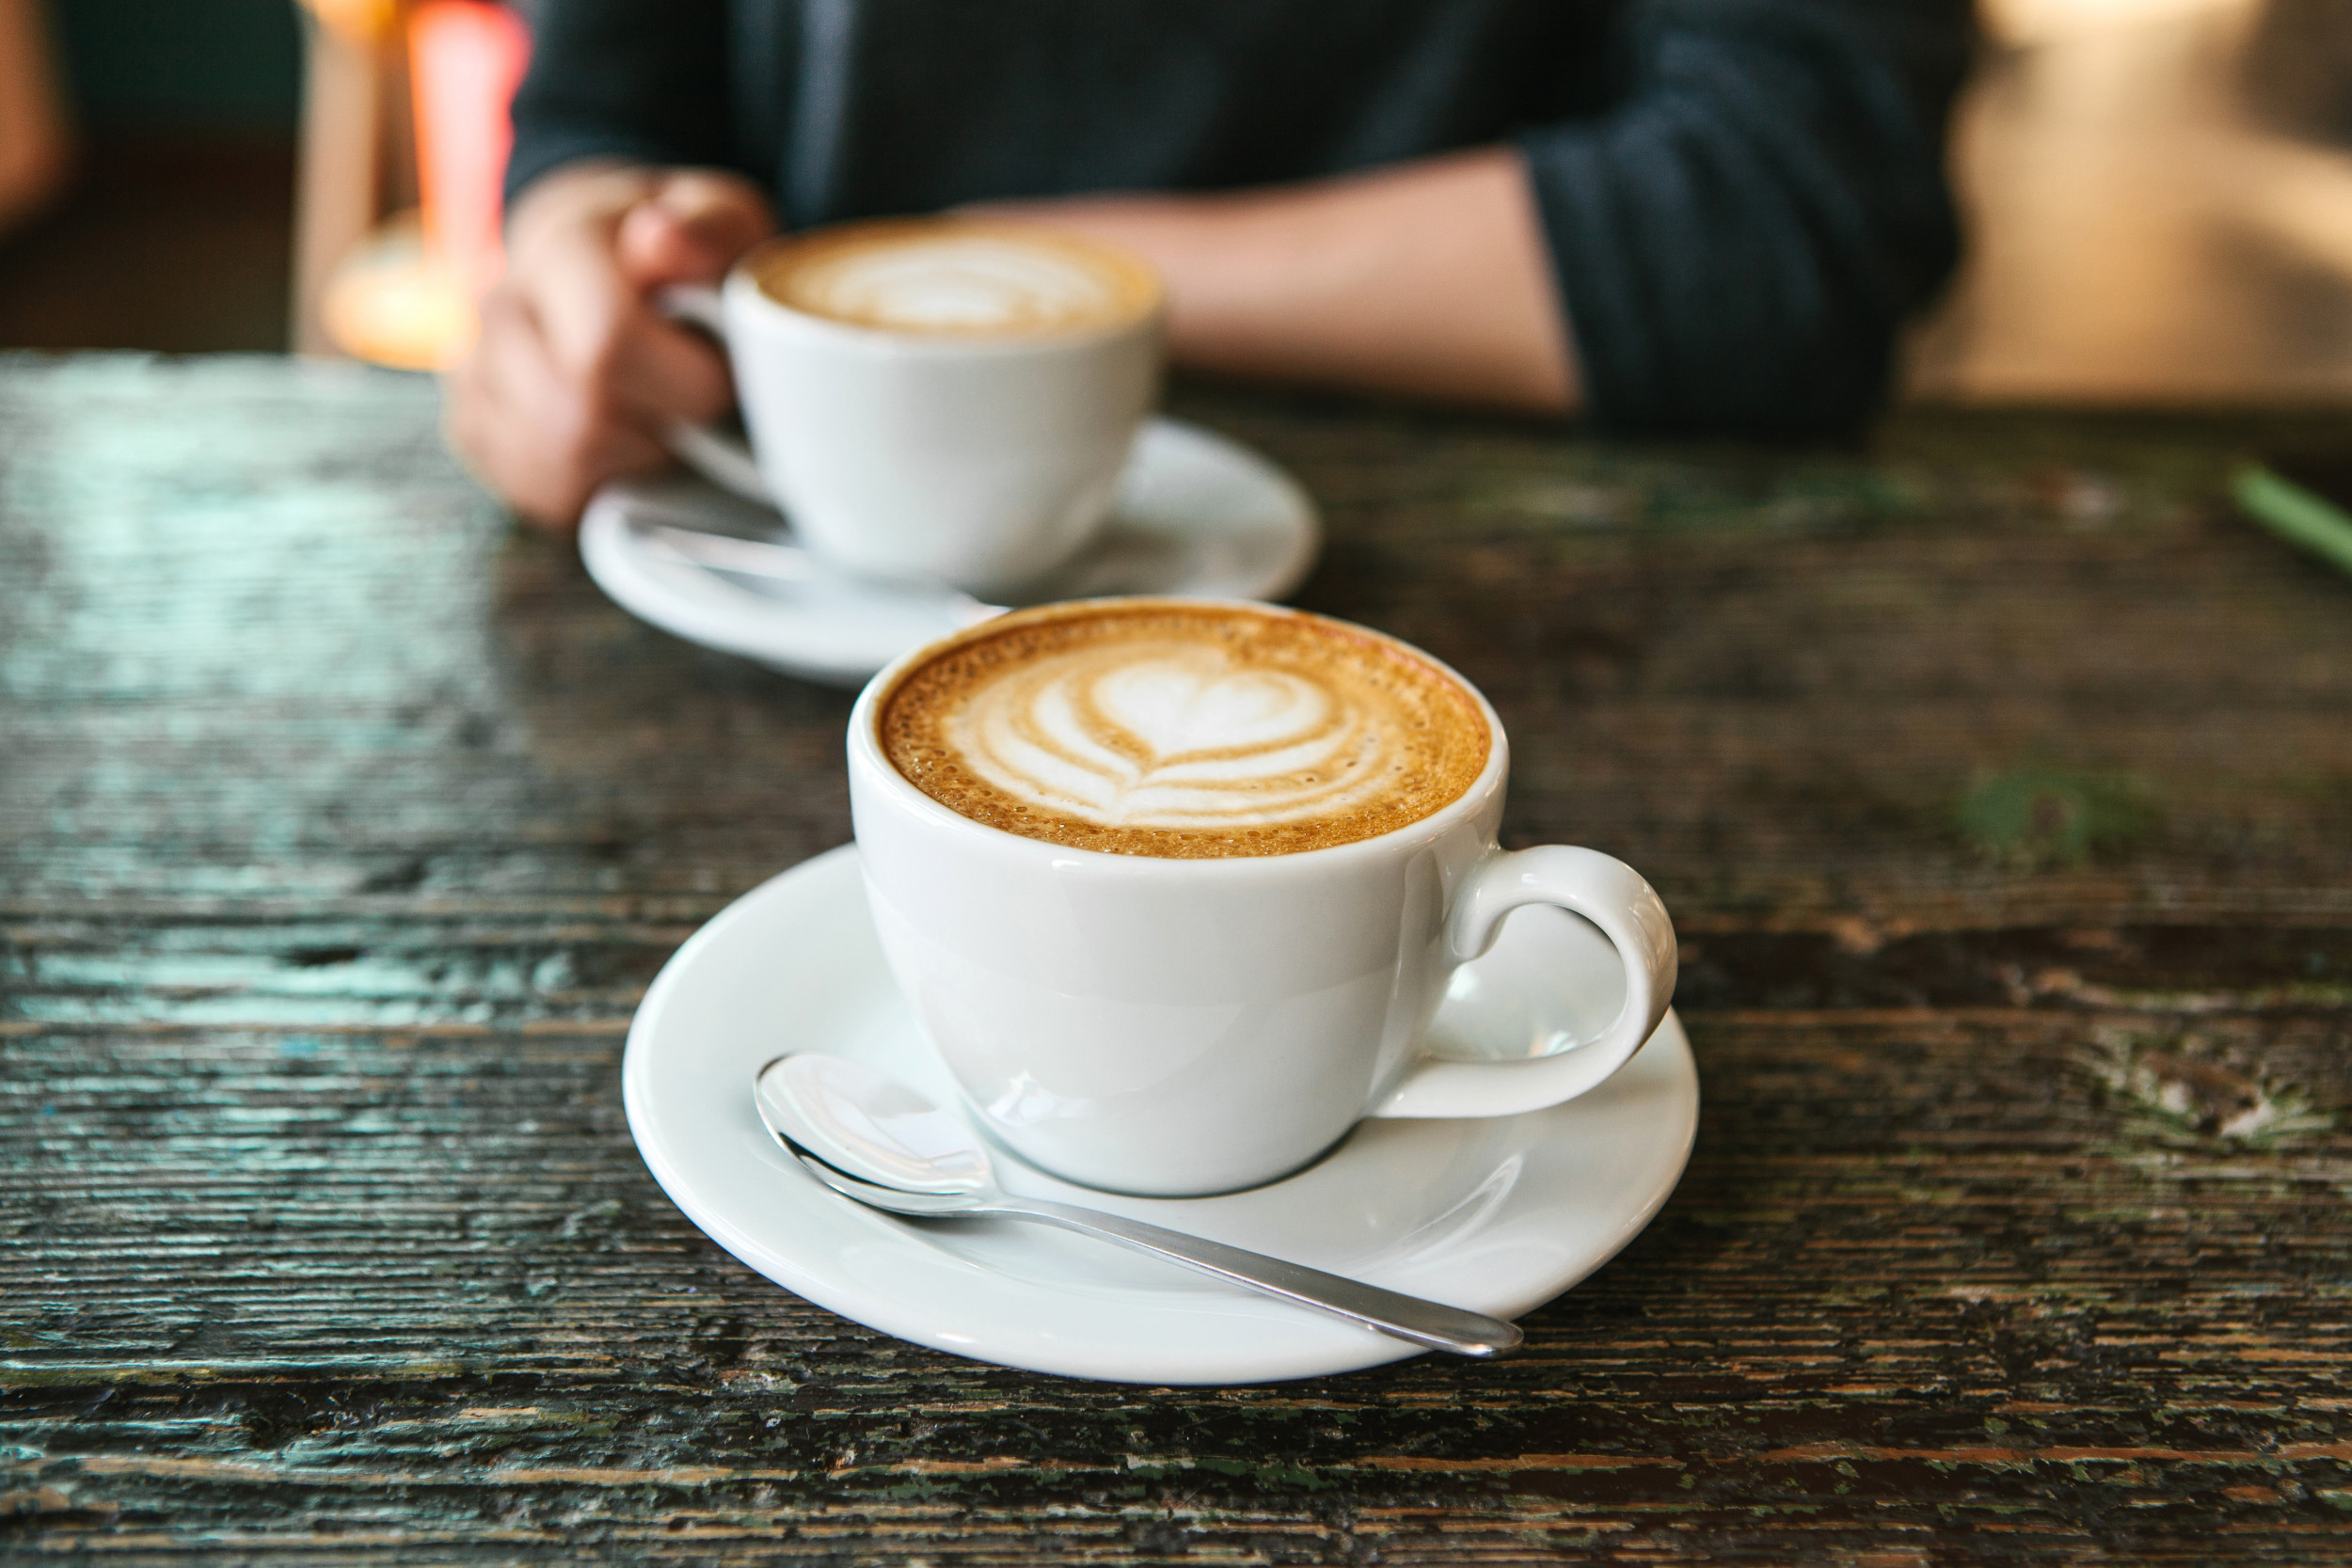 Does Coffee Cause Cancer? Scientists Study How Drink ...